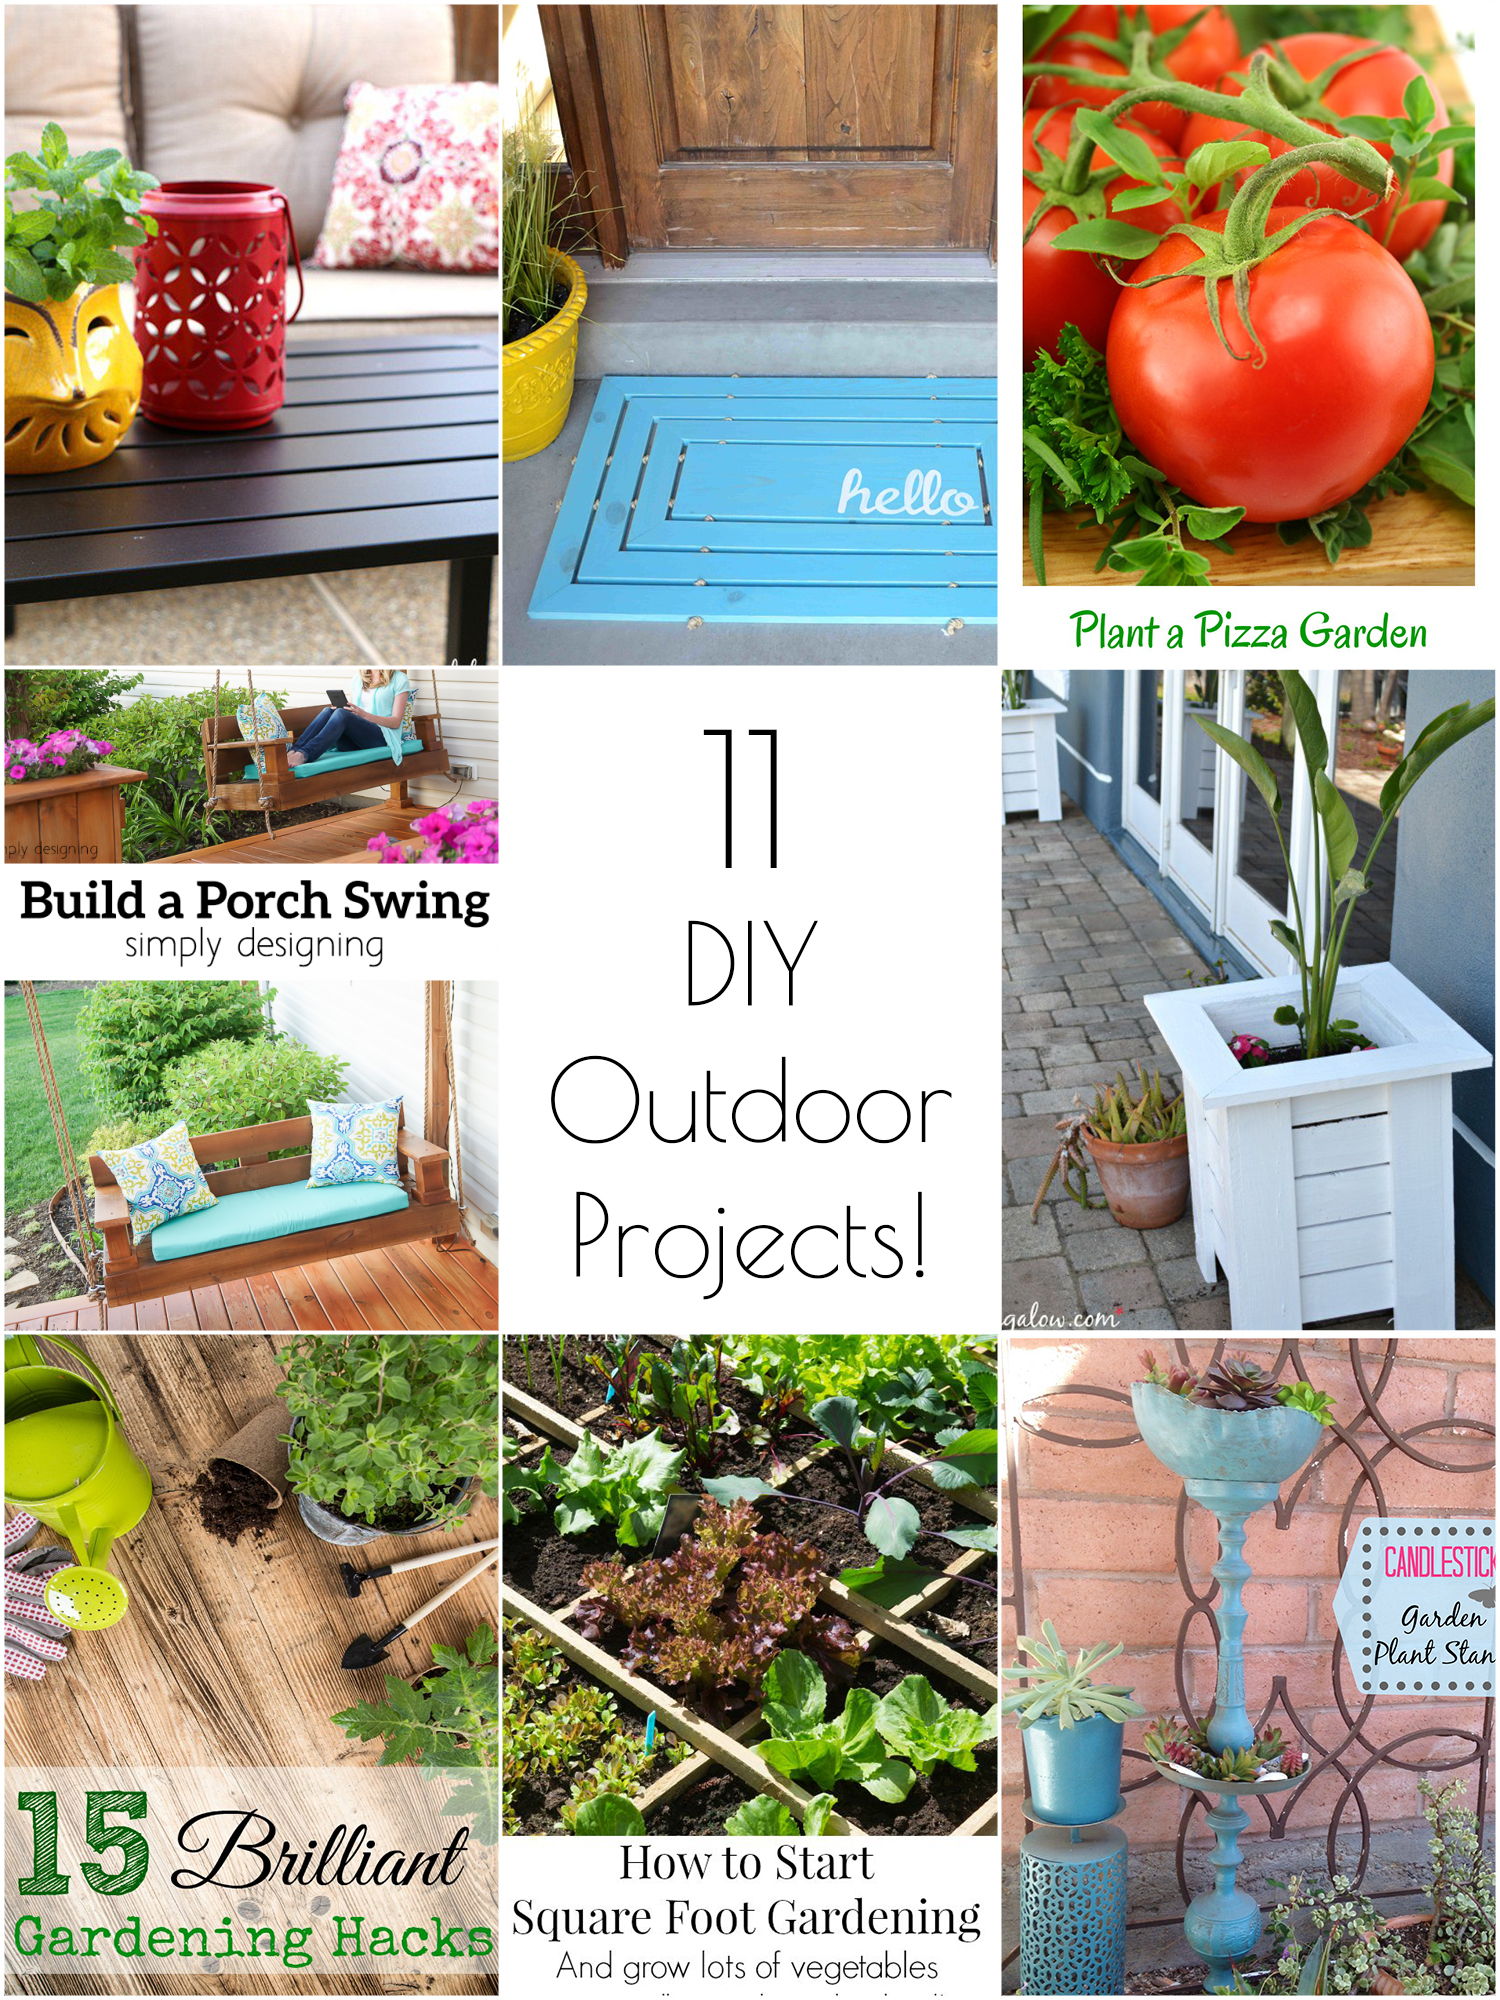 Merveilleux 11 Amazing DIY Outdoor Projects To Try This Spring